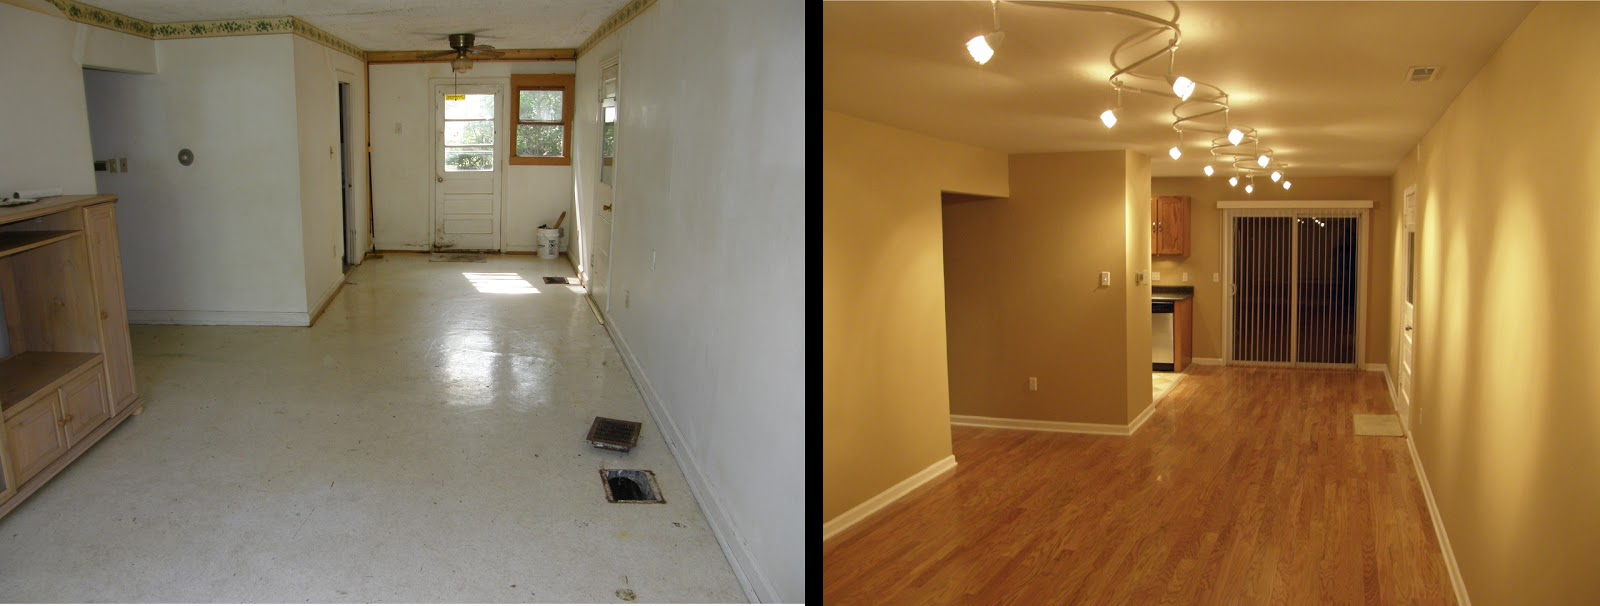 Henderson 39 s home improvement llc a living room remodel - Living room renovation before and after ...